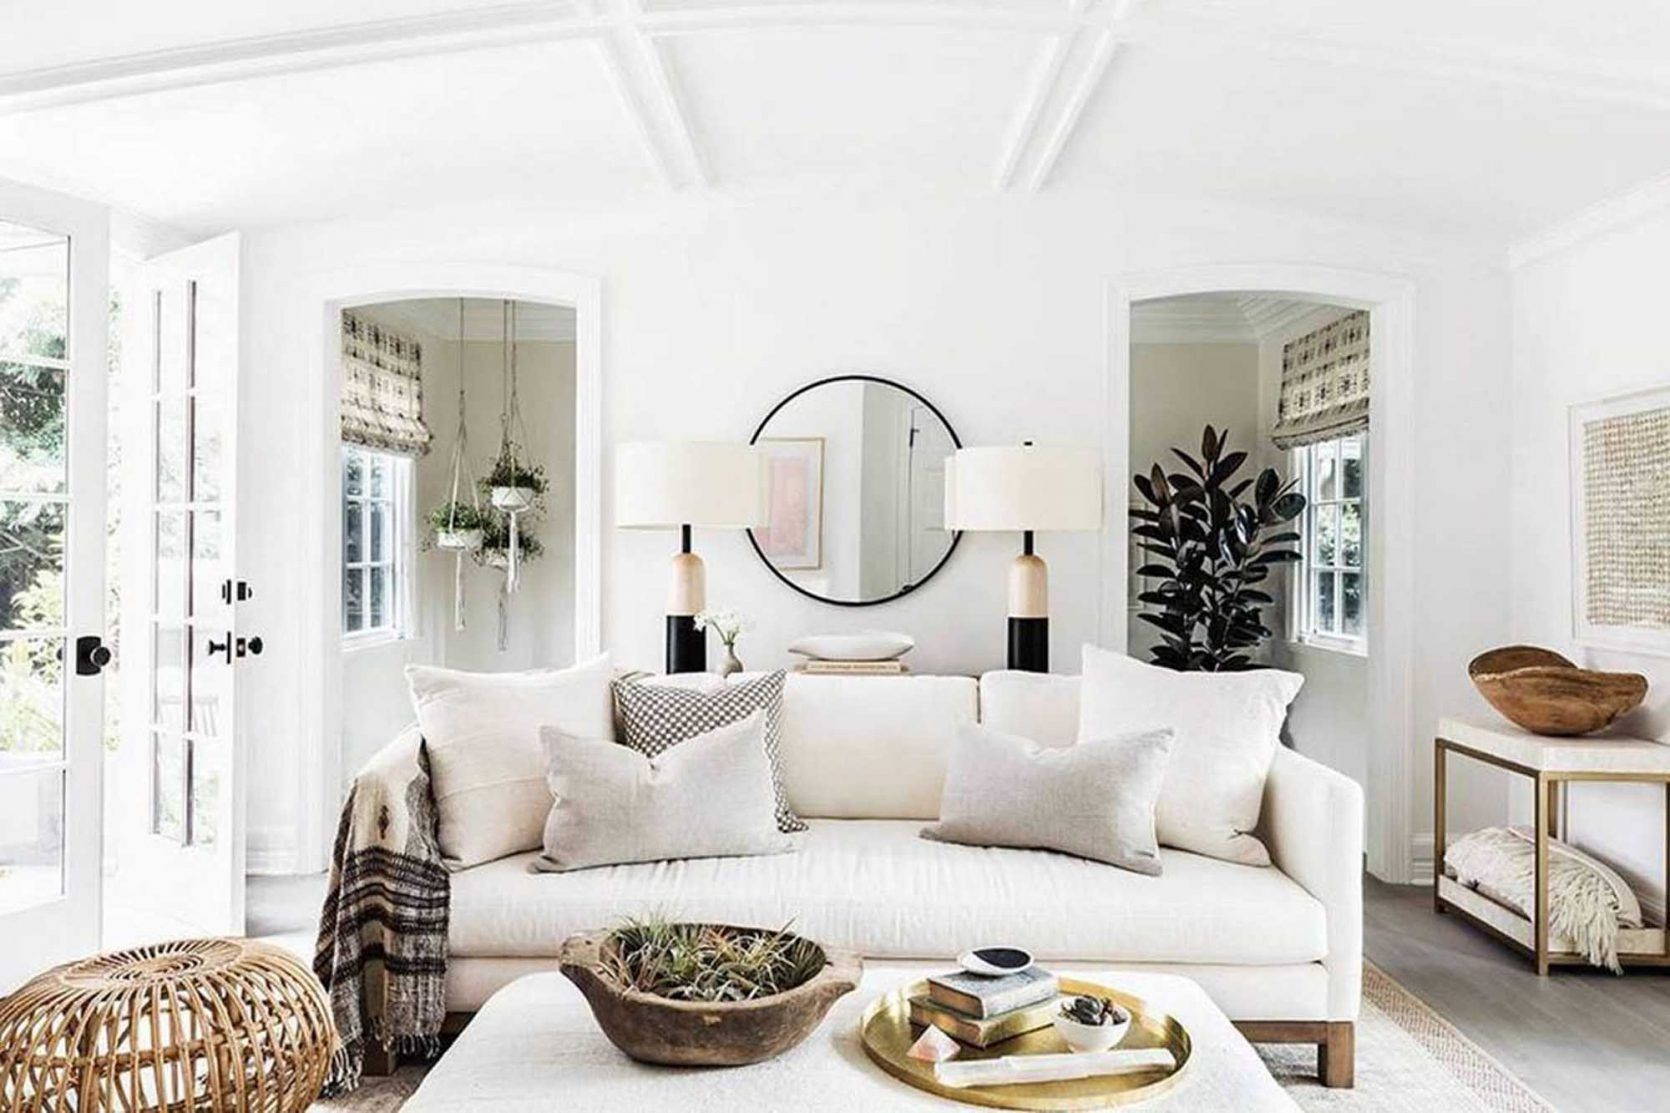 Emily Henderson How To Decorate With Neutrals #home #style #interiordesign